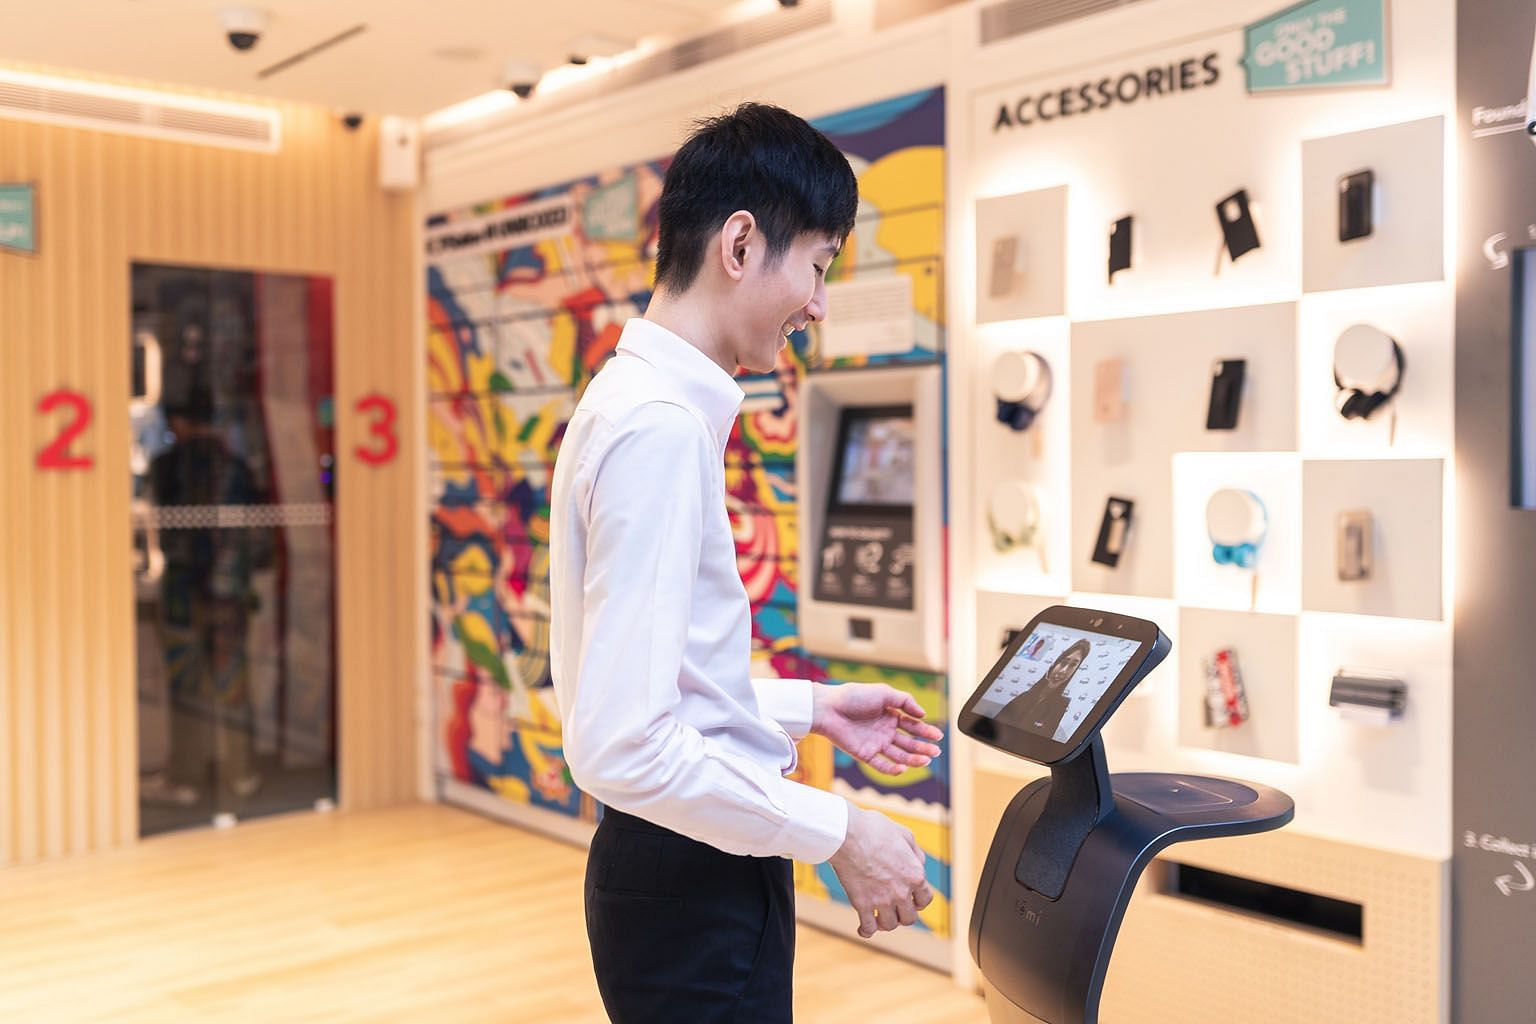 Singtel's first unmanned pop-up store at 20 Pickering Street has no shop assistants, but customers are greeted by a service staff member via a video screen on a roving robot. It is a self-service store that allows customers to try out phones, sign up